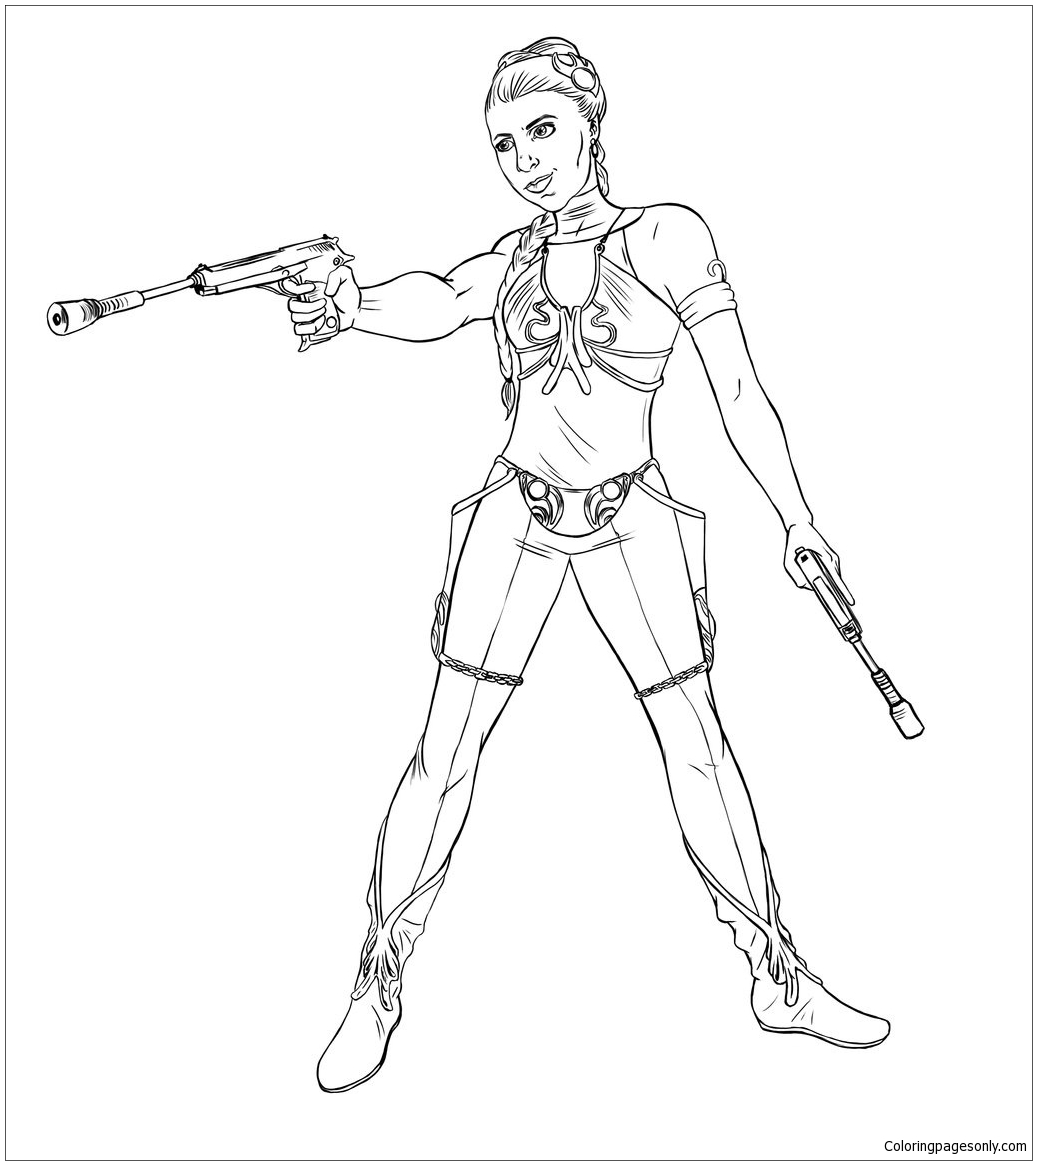 Star Wars Princess Leia 1 Coloring Page Free Coloring Pages Online